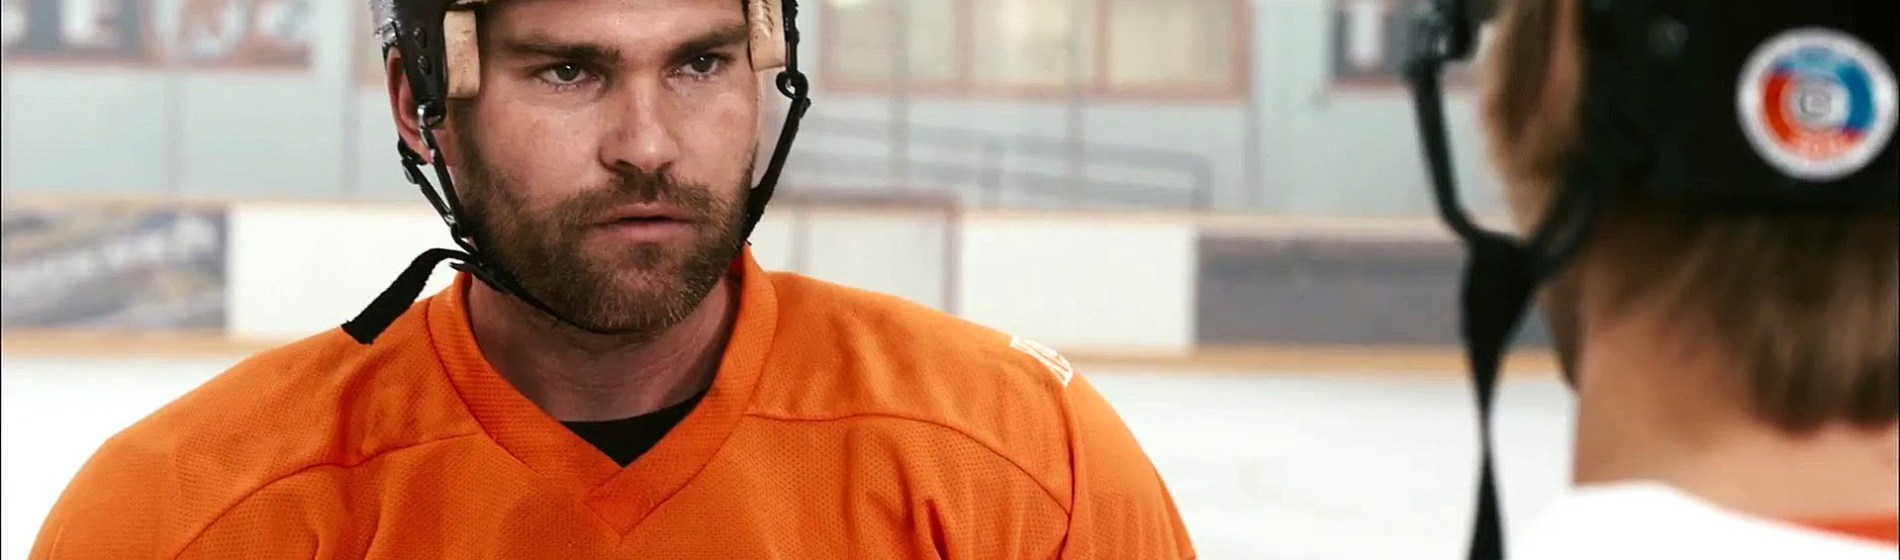 Goon: The Last of the Enforcers